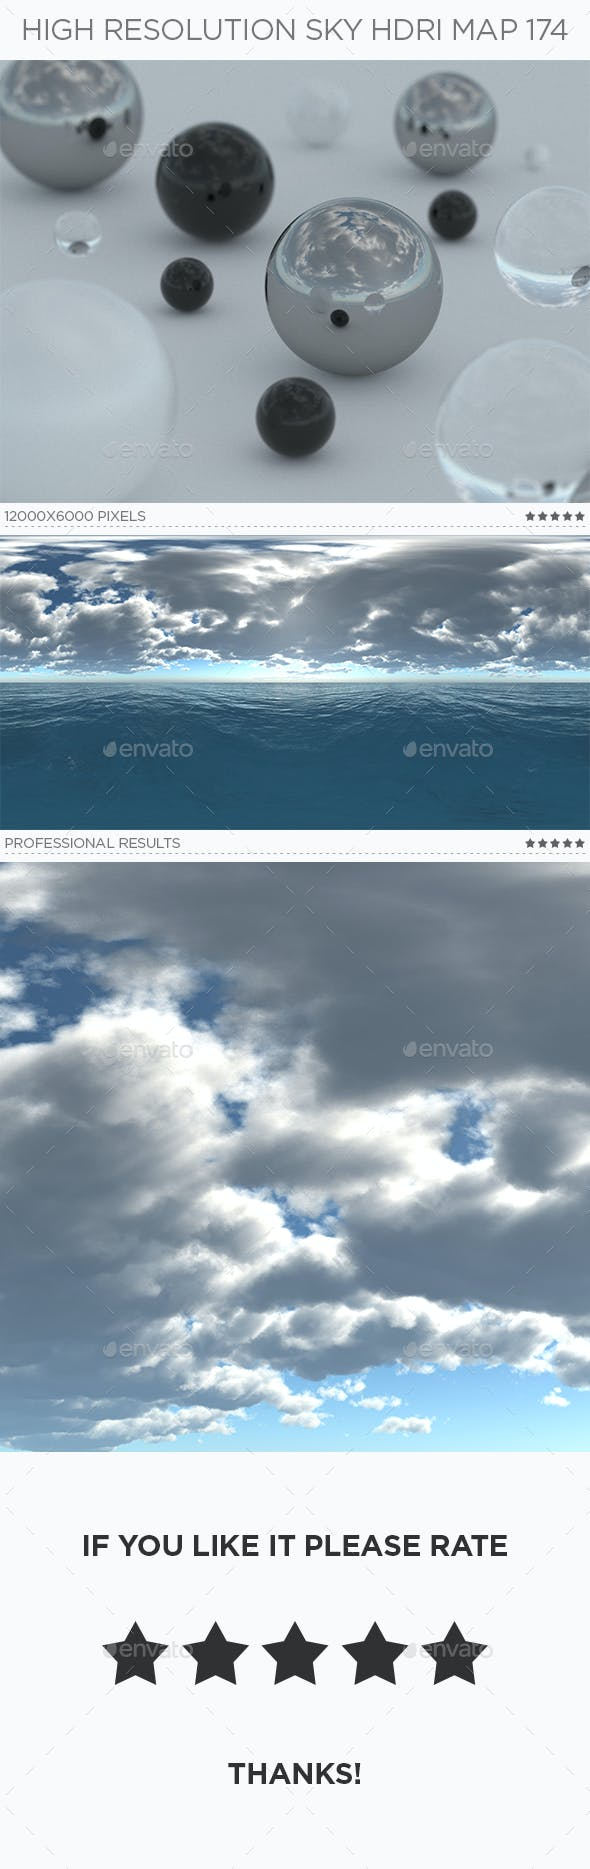 High Resolution Sky HDRi Map 174 - 3DOcean Item for Sale